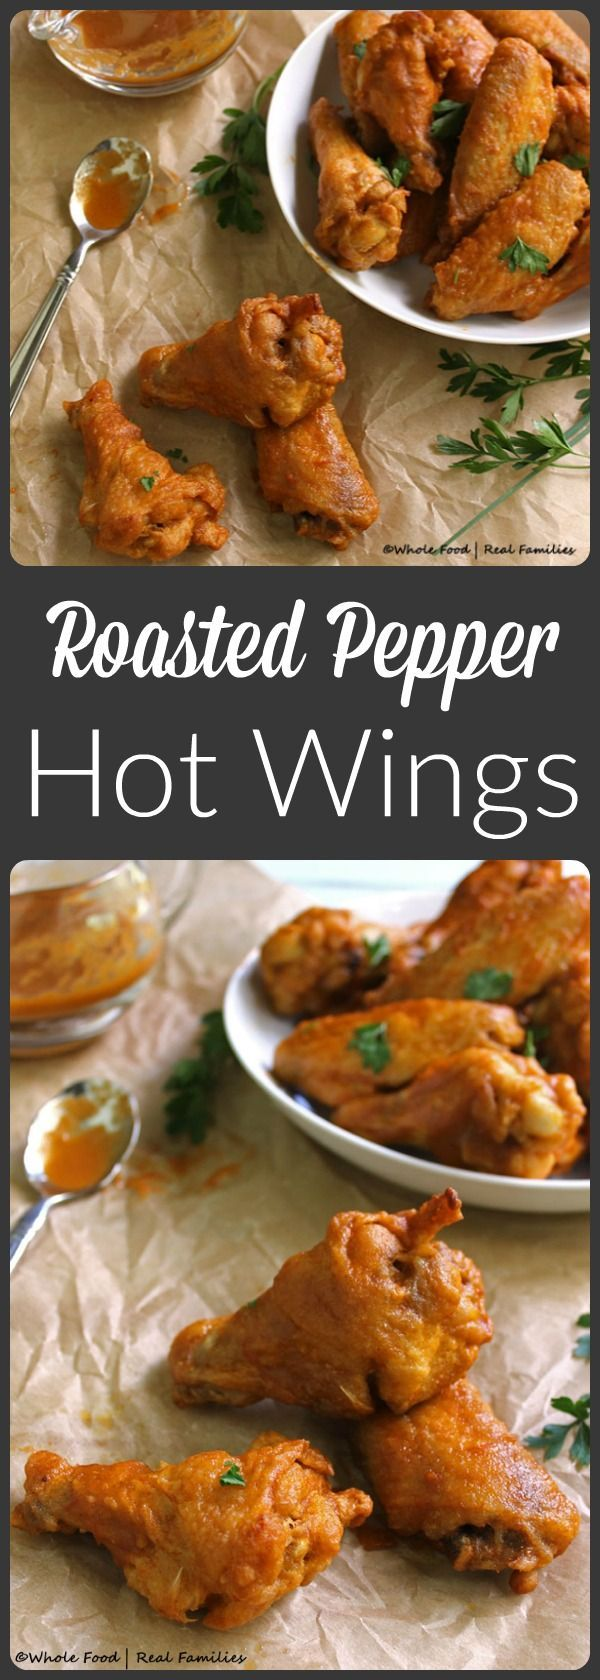 Roasted Pepper Hot Wings are the perfect party food recipe! Get your neighbors talking about what a good cook you are at the next block party with these chicken wings! @Whole Food | Real Families